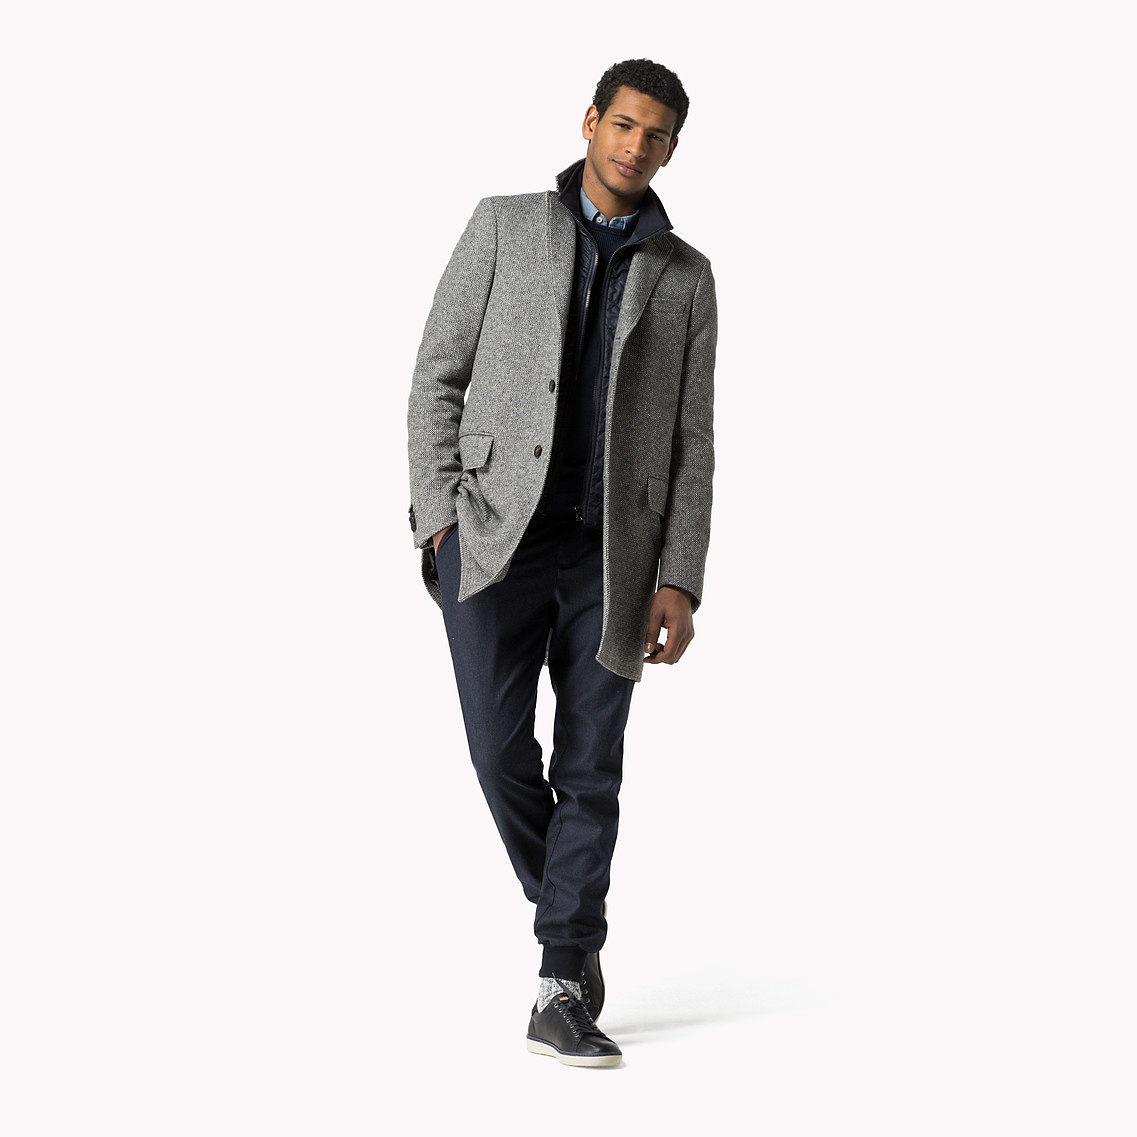 Tommy Hilfiger Wool Blend Twill Coat In Gray For Men Lyst